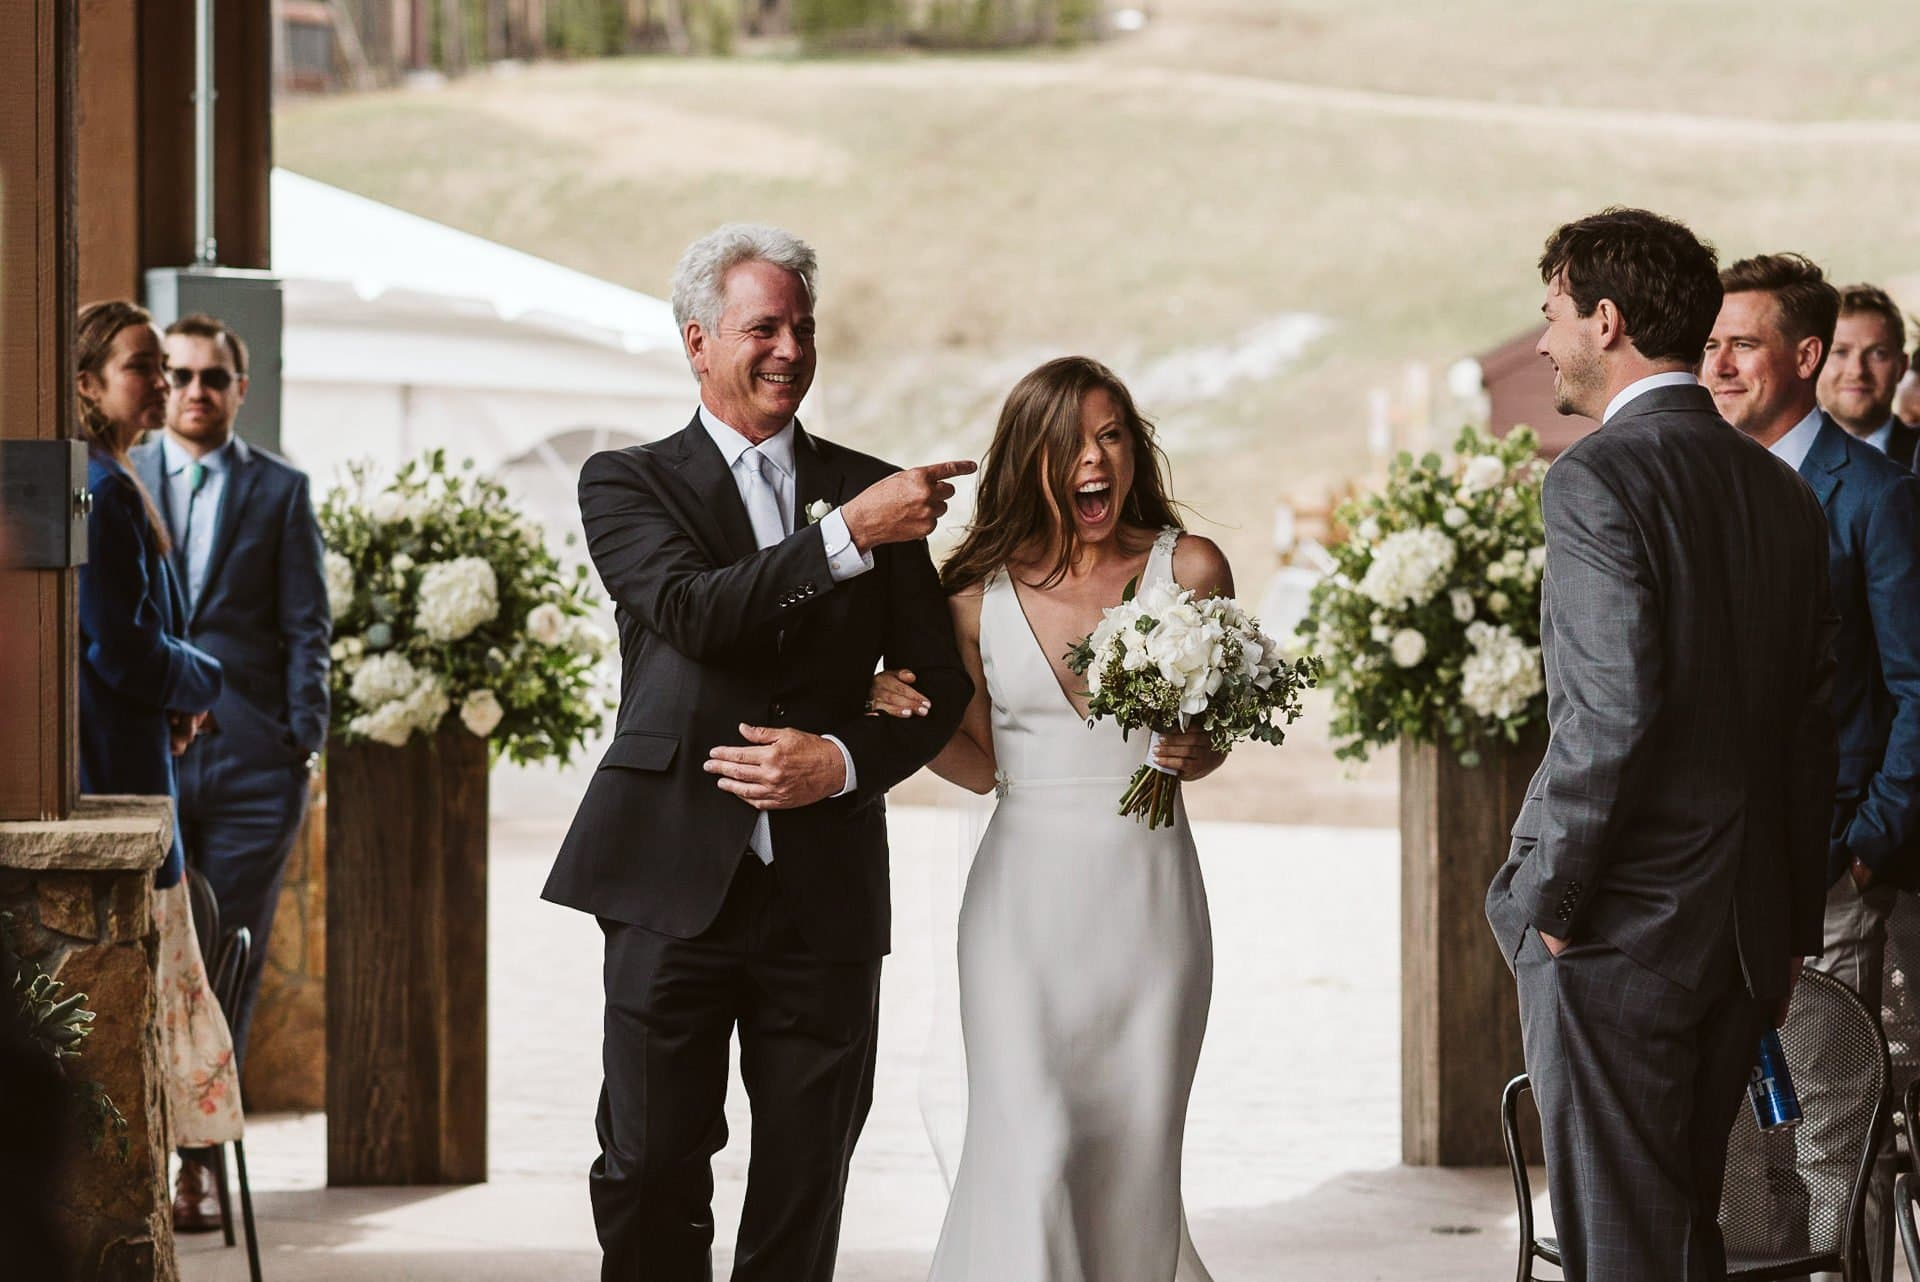 Bride and her father walking down the aisle for wedding ceremony at Breckenridge Ski Resort, Colorado mountain wedding